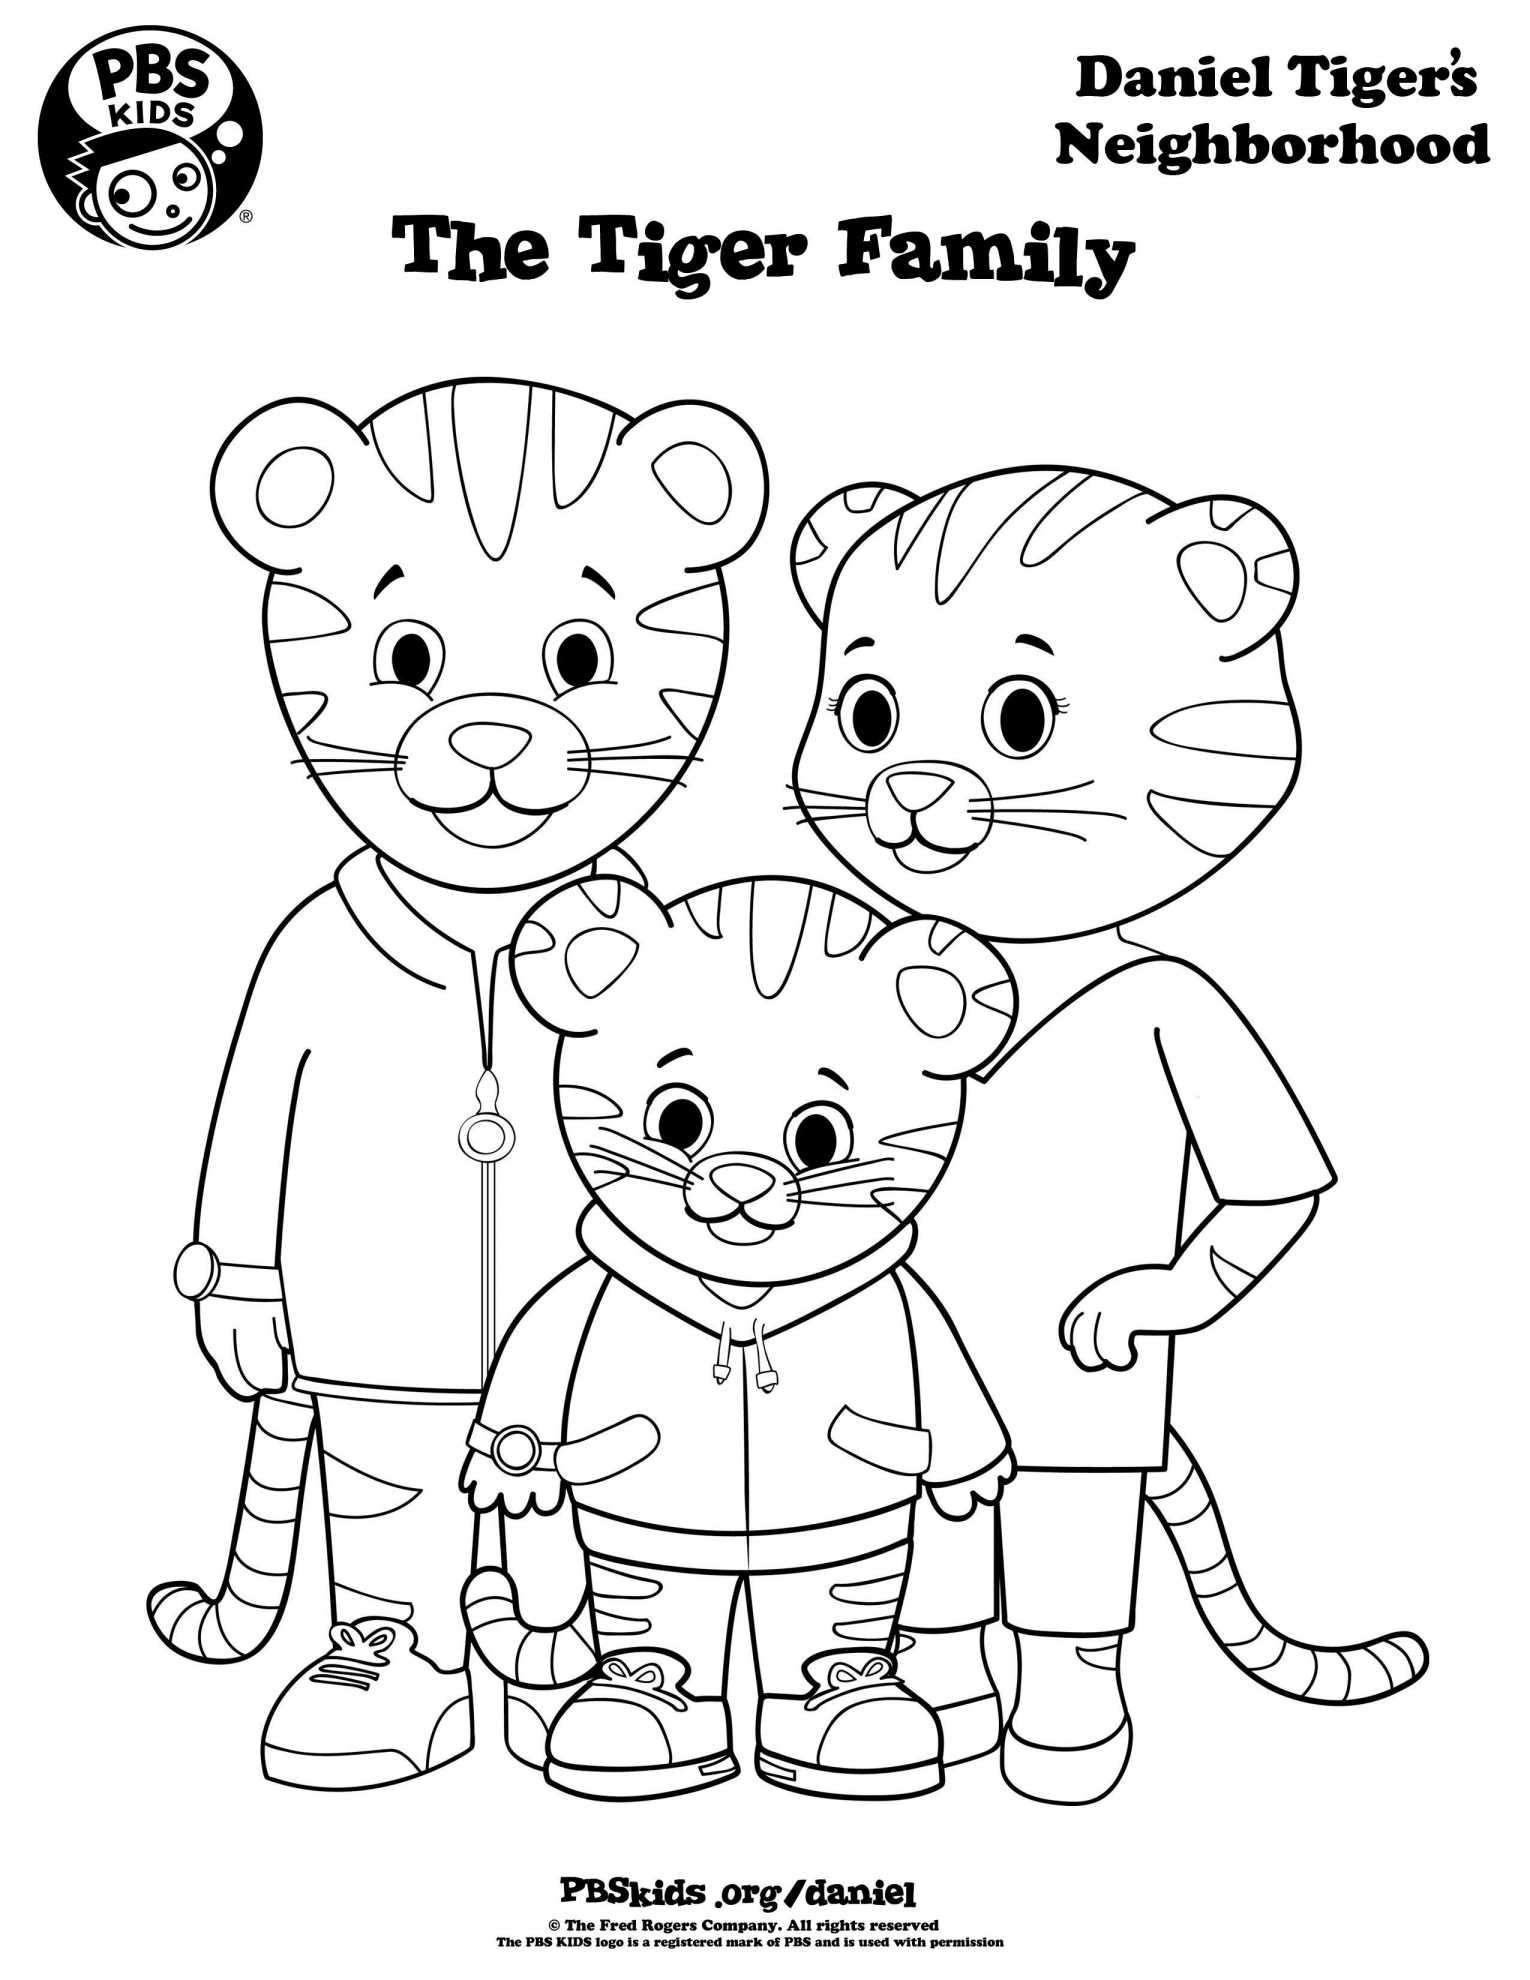 free printable preschool coloring pages Collection-Free Christmas Coloring Pages for Kids Printable Christmas Coloring Sheets Free Printable Best Printable Cds 0d 6-g